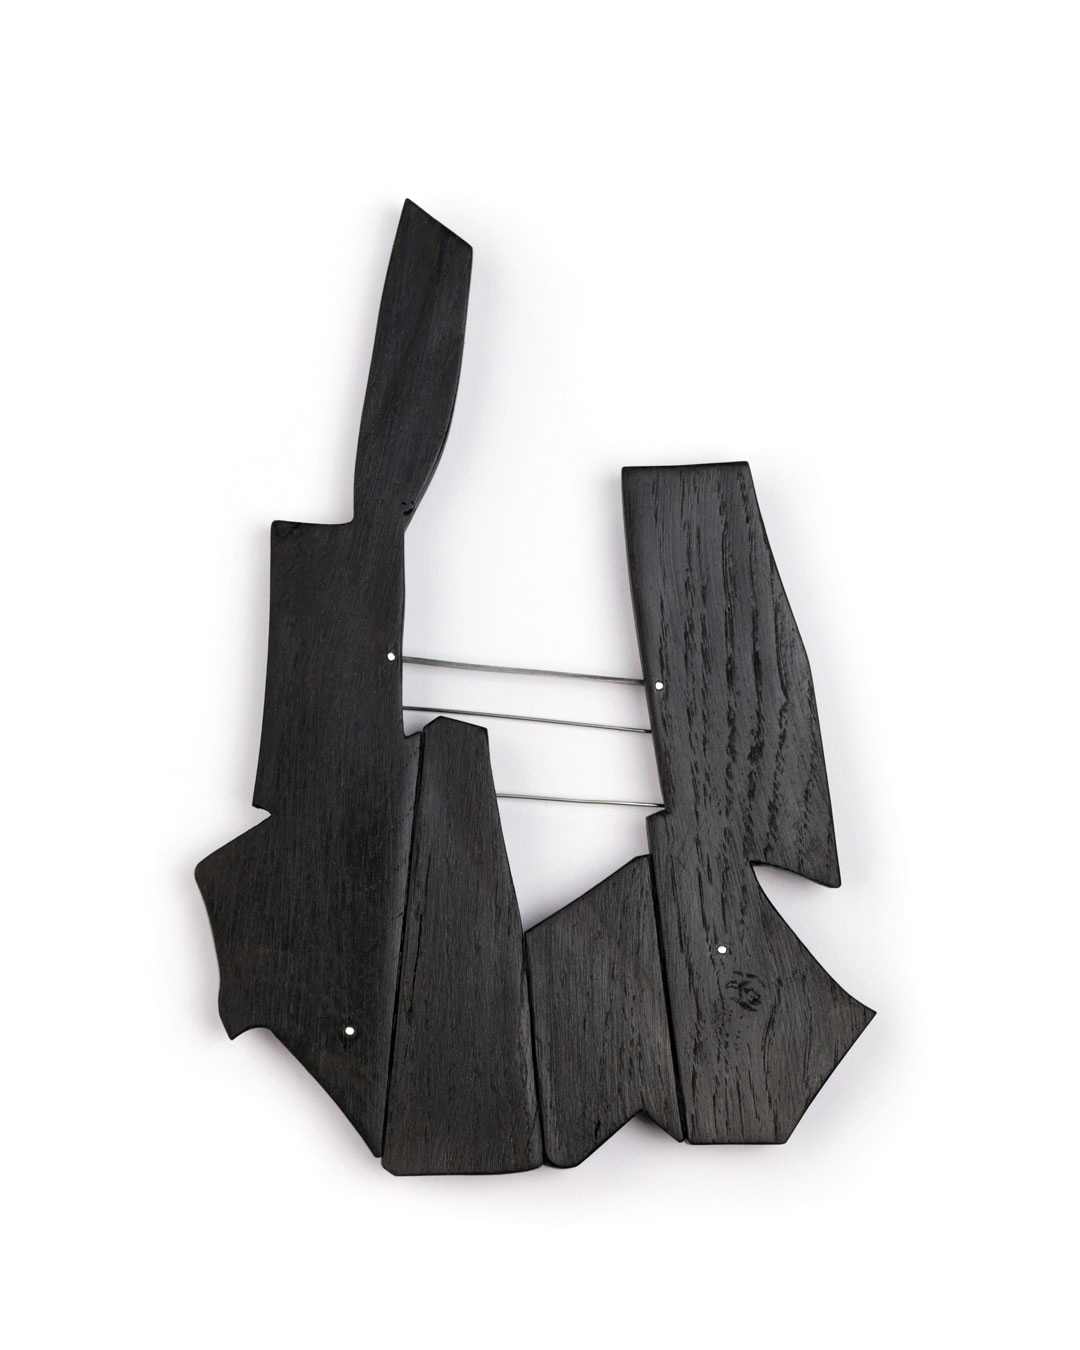 Antje Bräuer, Couple, 2018, brooch; bog oak, silver, steel, 198 x 135 x 13 mm, €1700